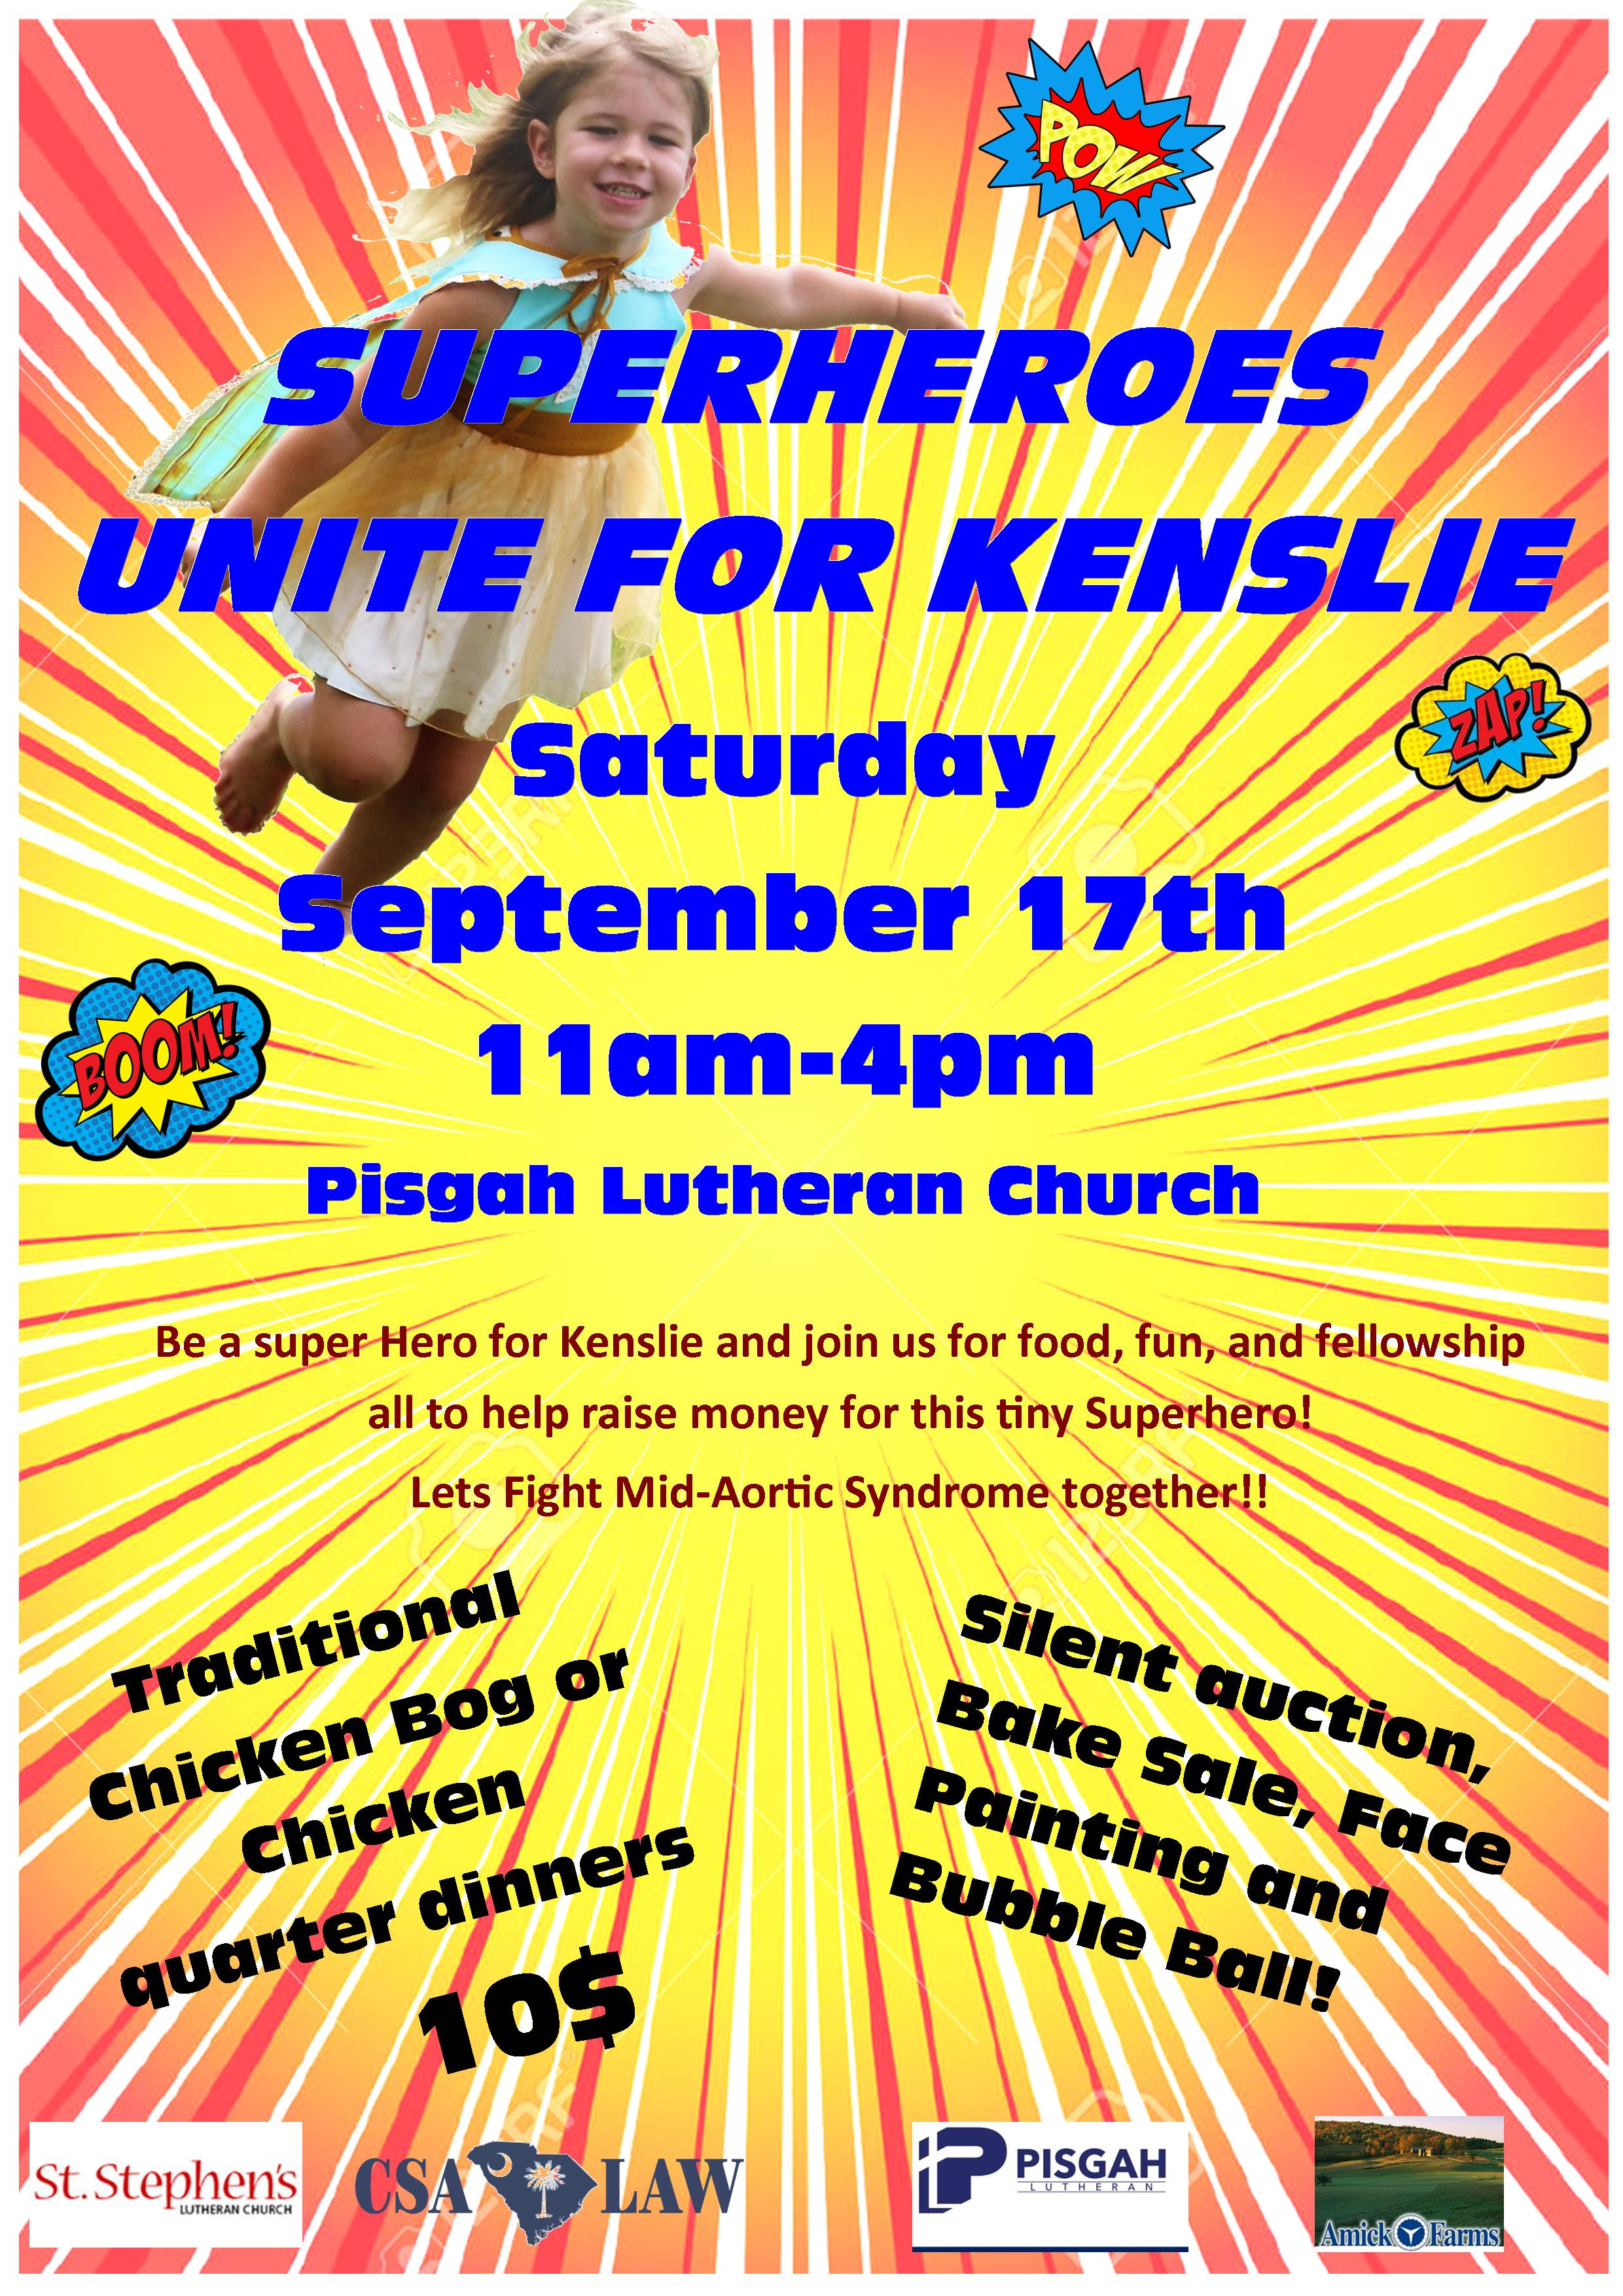 Columbia Personal Injury Law Firm Support Superheroes Unite for Kenslie